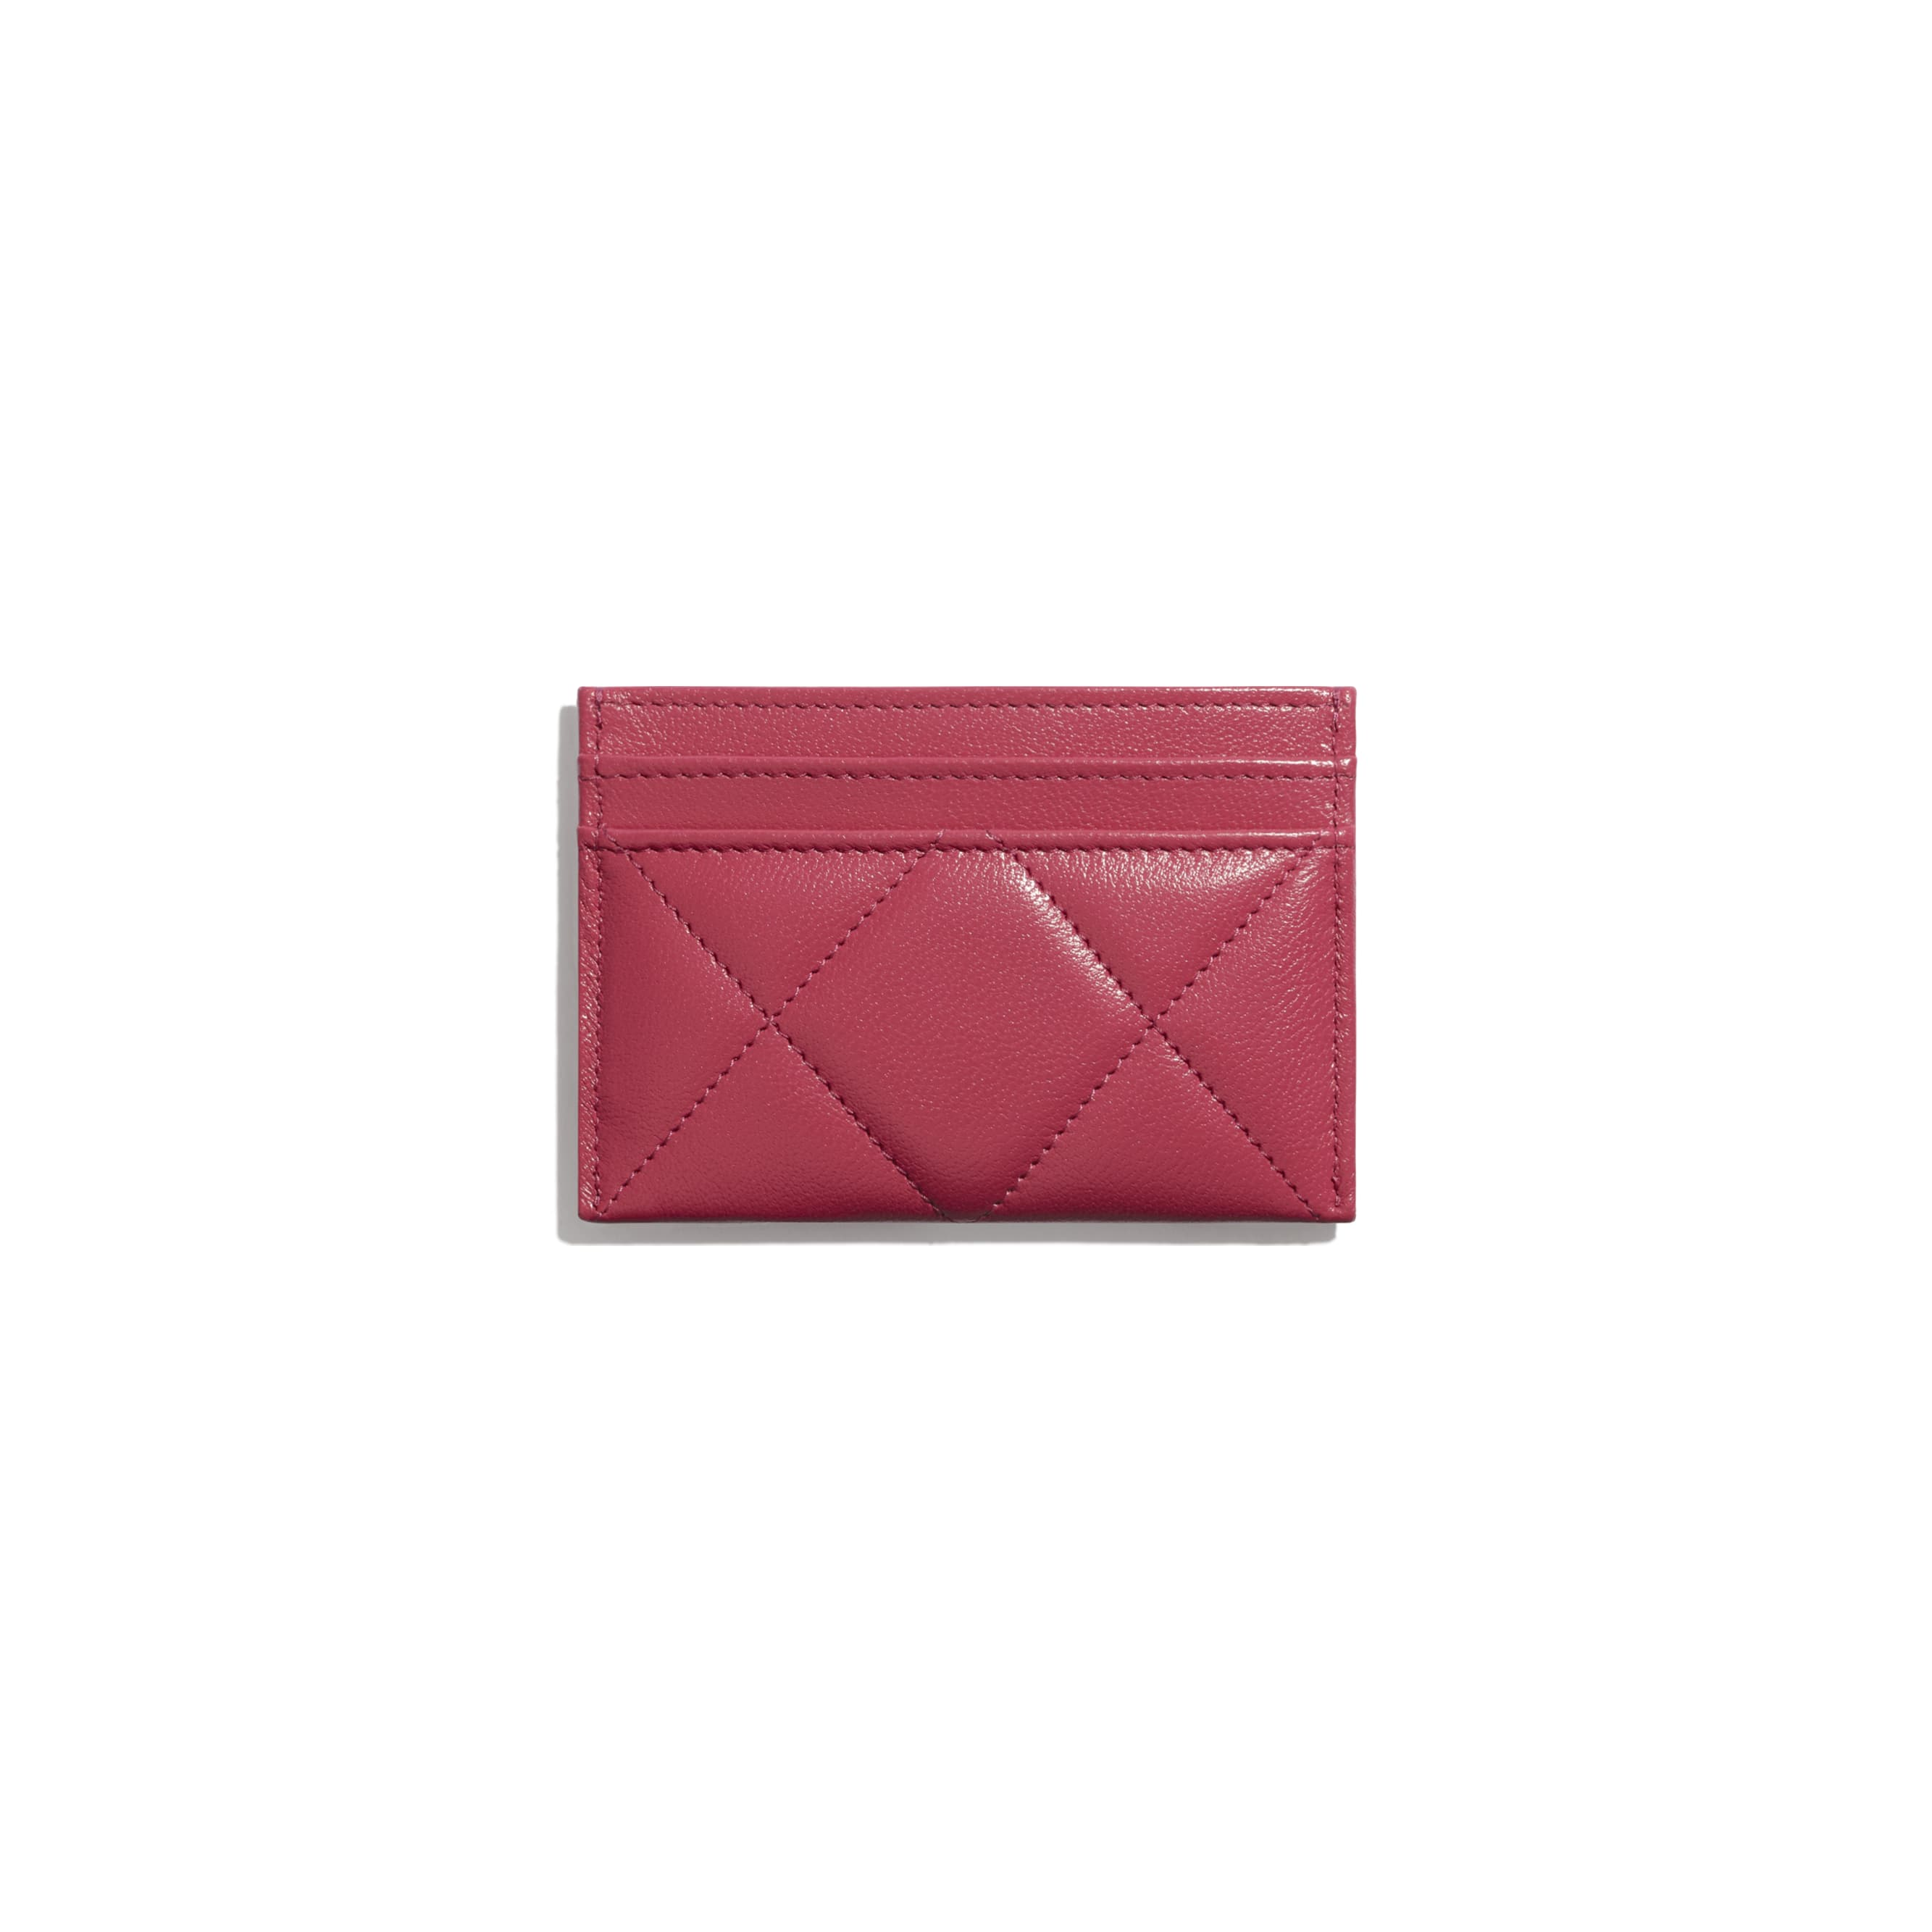 CHANEL 19 Card Holder - Dark Pink - Lambskin, Gold-Tone, Silver-Tone & Ruthenium-Finish Metal - CHANEL - Alternative view - see standard sized version